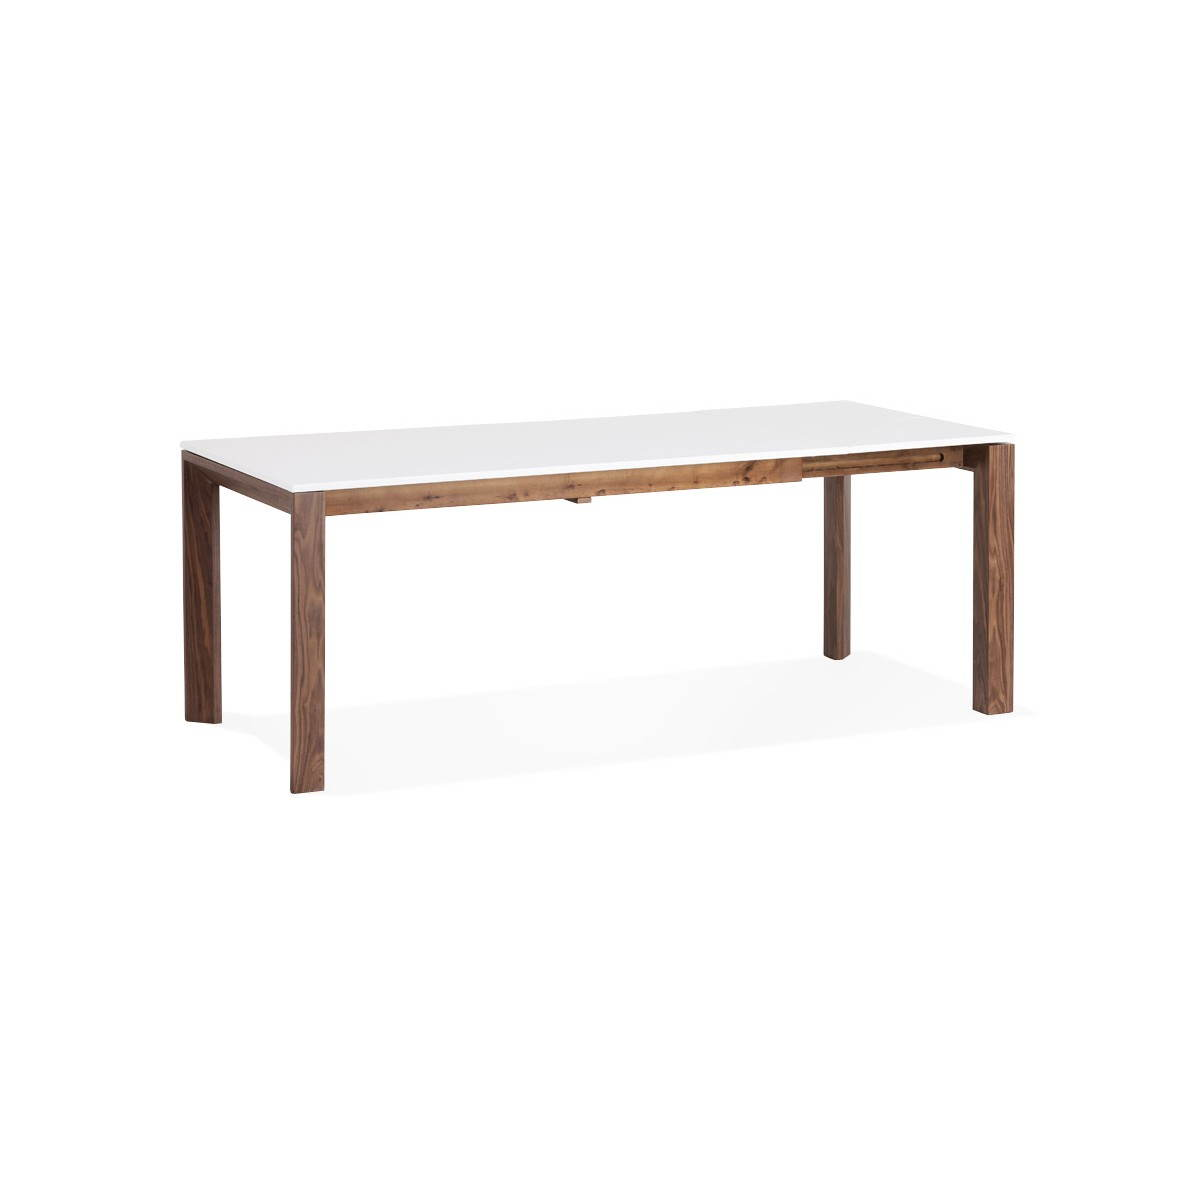 Table design rectangulaire avec rallonge loulou en bois for Salle a manger table carree rallonge